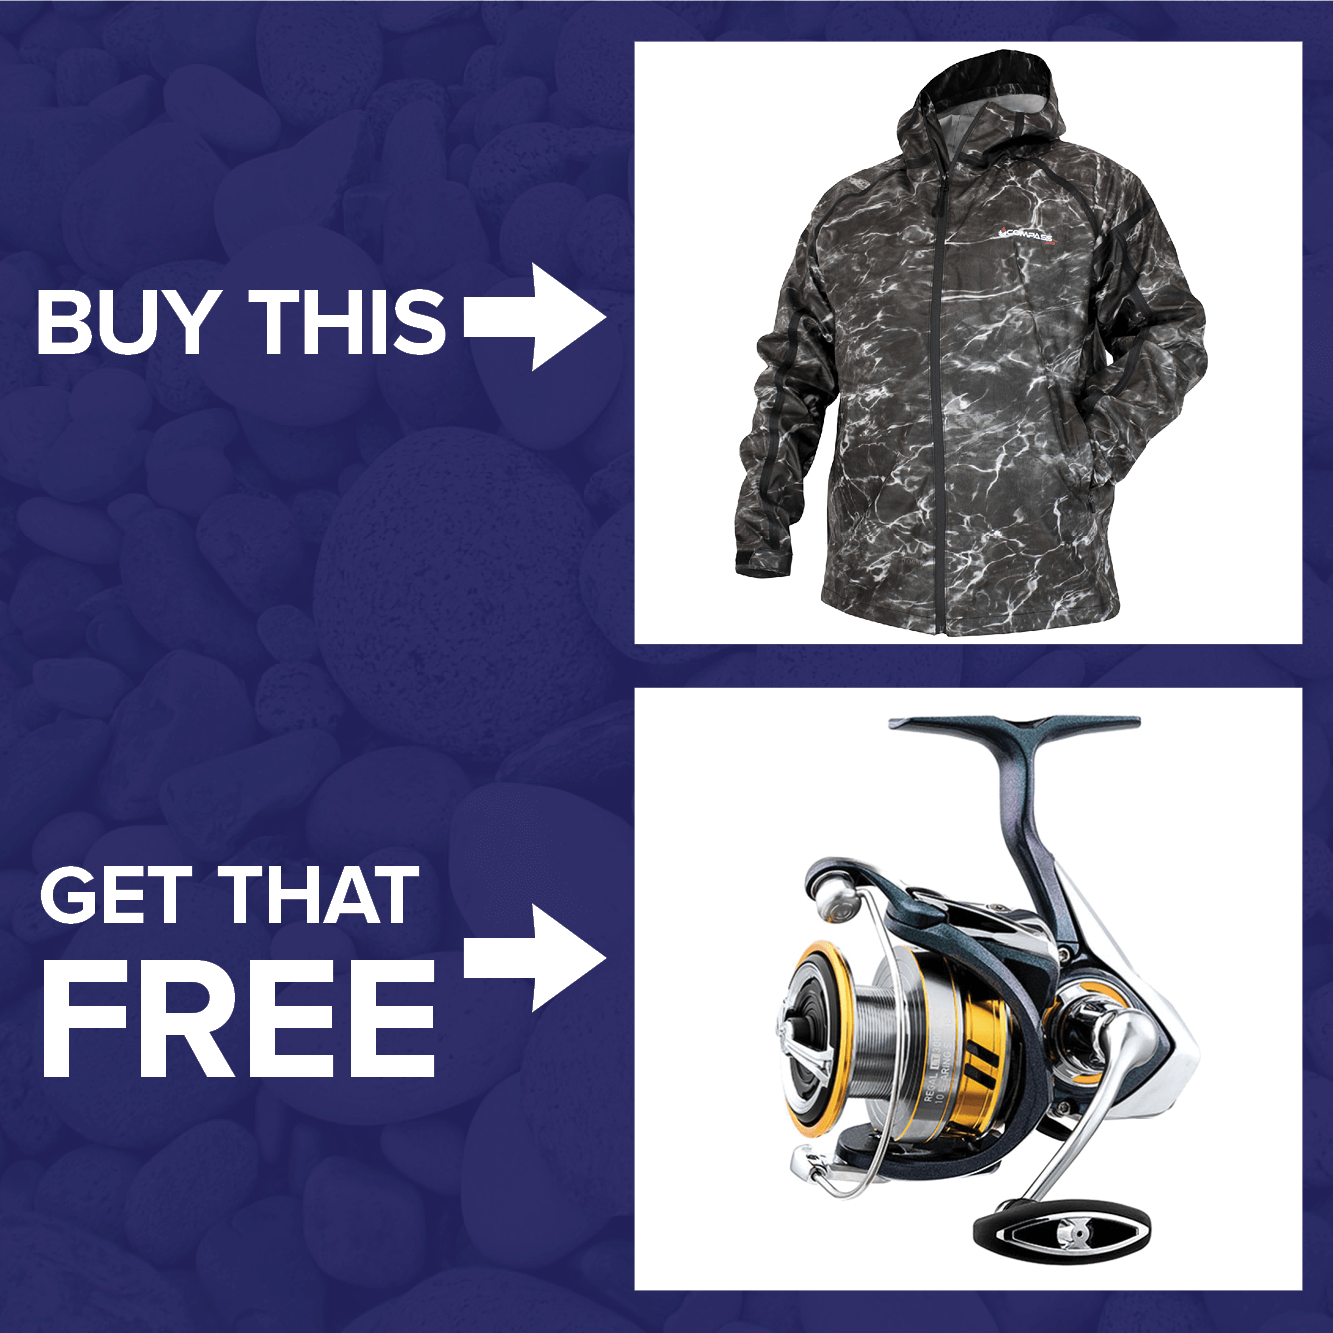 Buy a Compass 360 Pilot Point Ultra Dry Elements Agua Jacket & get a FREE Free Daiwa Regal LT Spinning Reel